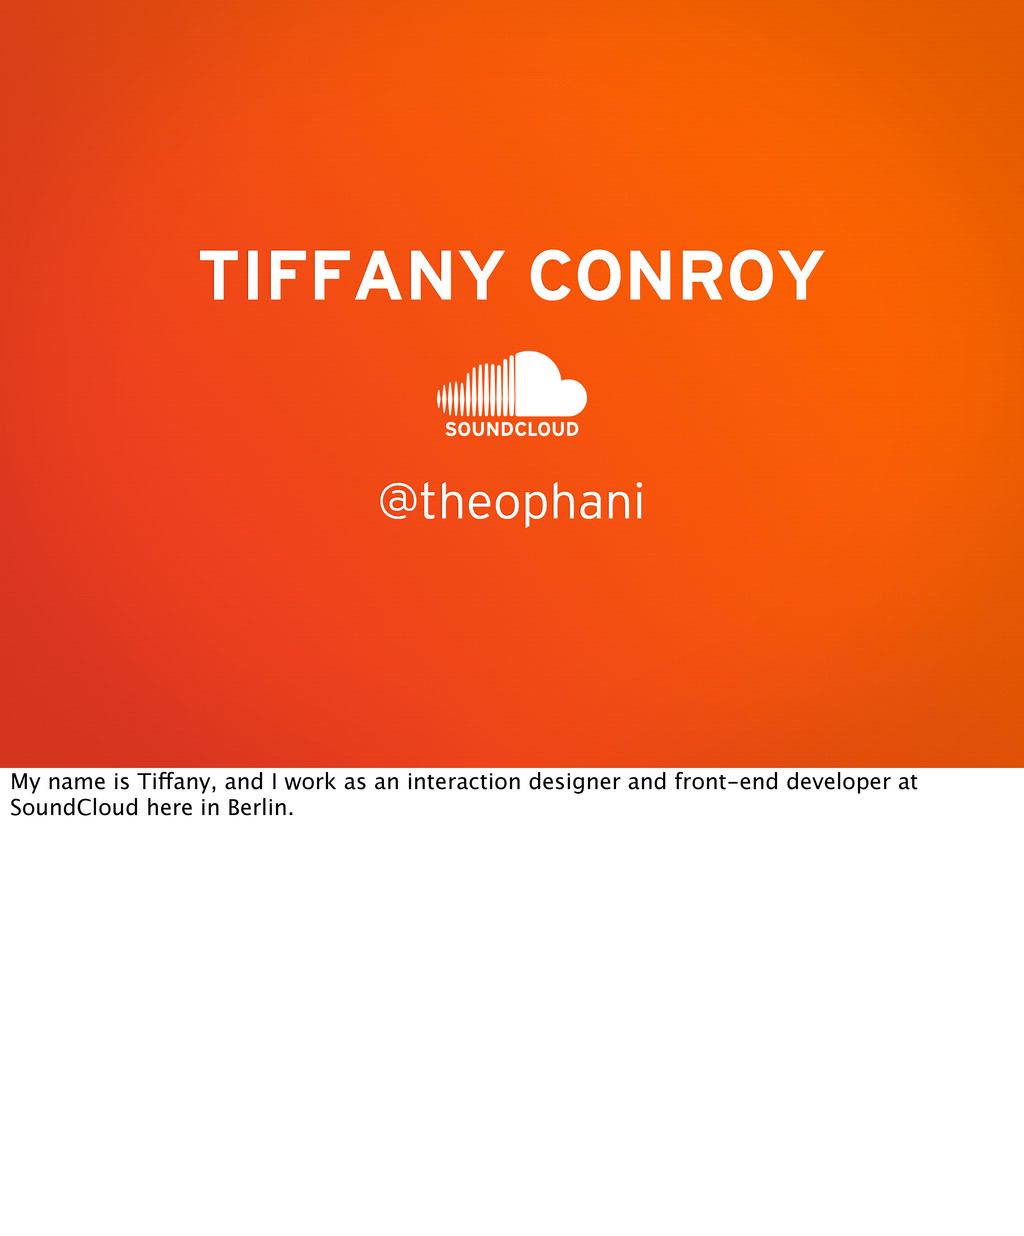 @theophani TIFFANY CONROY My name is Tiffany, a...